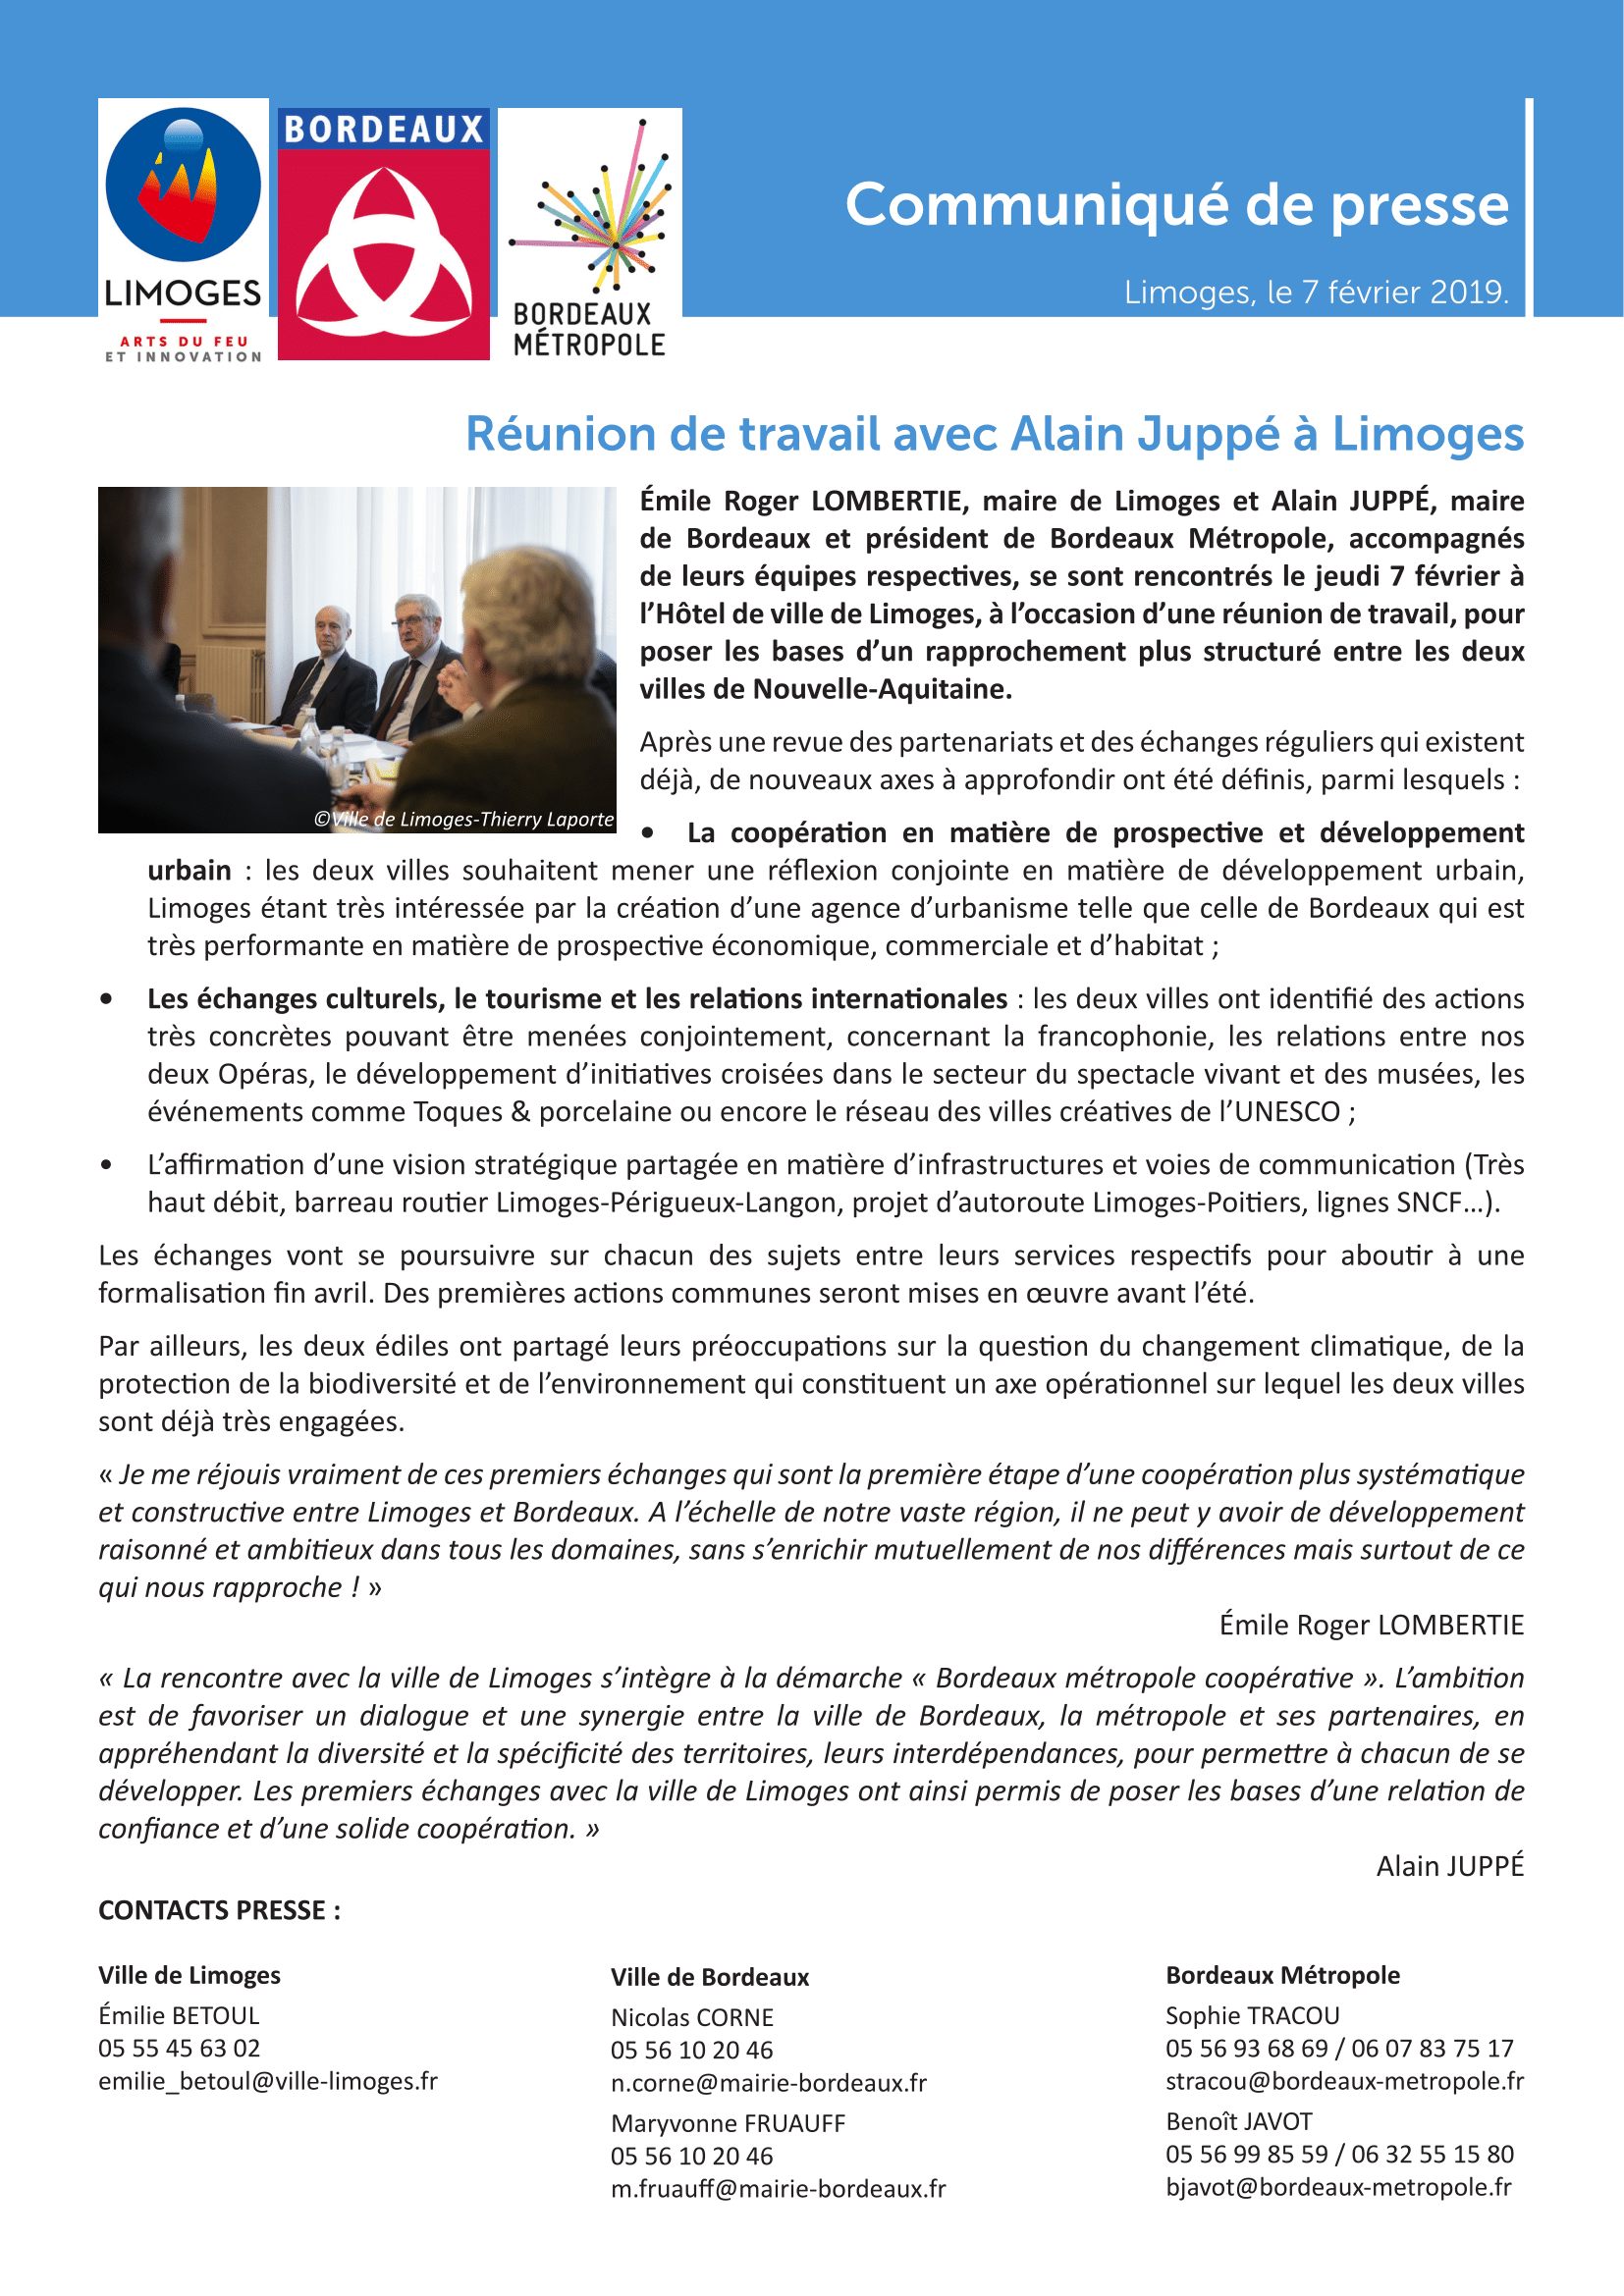 2019-02-07-cp-a-juppe-limoges-1